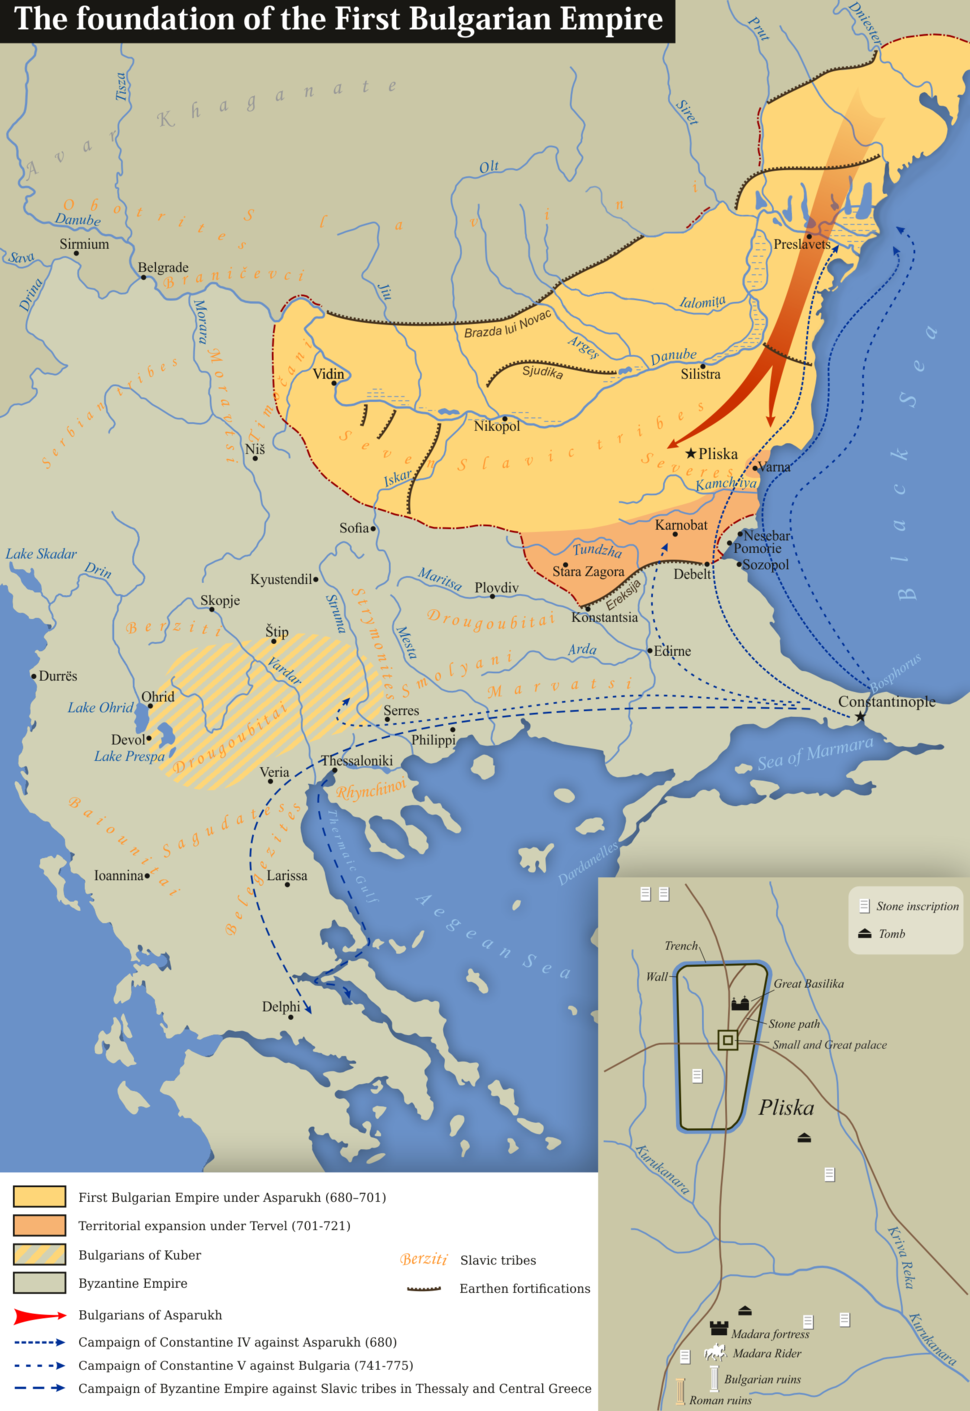 Balkans about 680 A.D., foundation of the First Bulgarian Empire